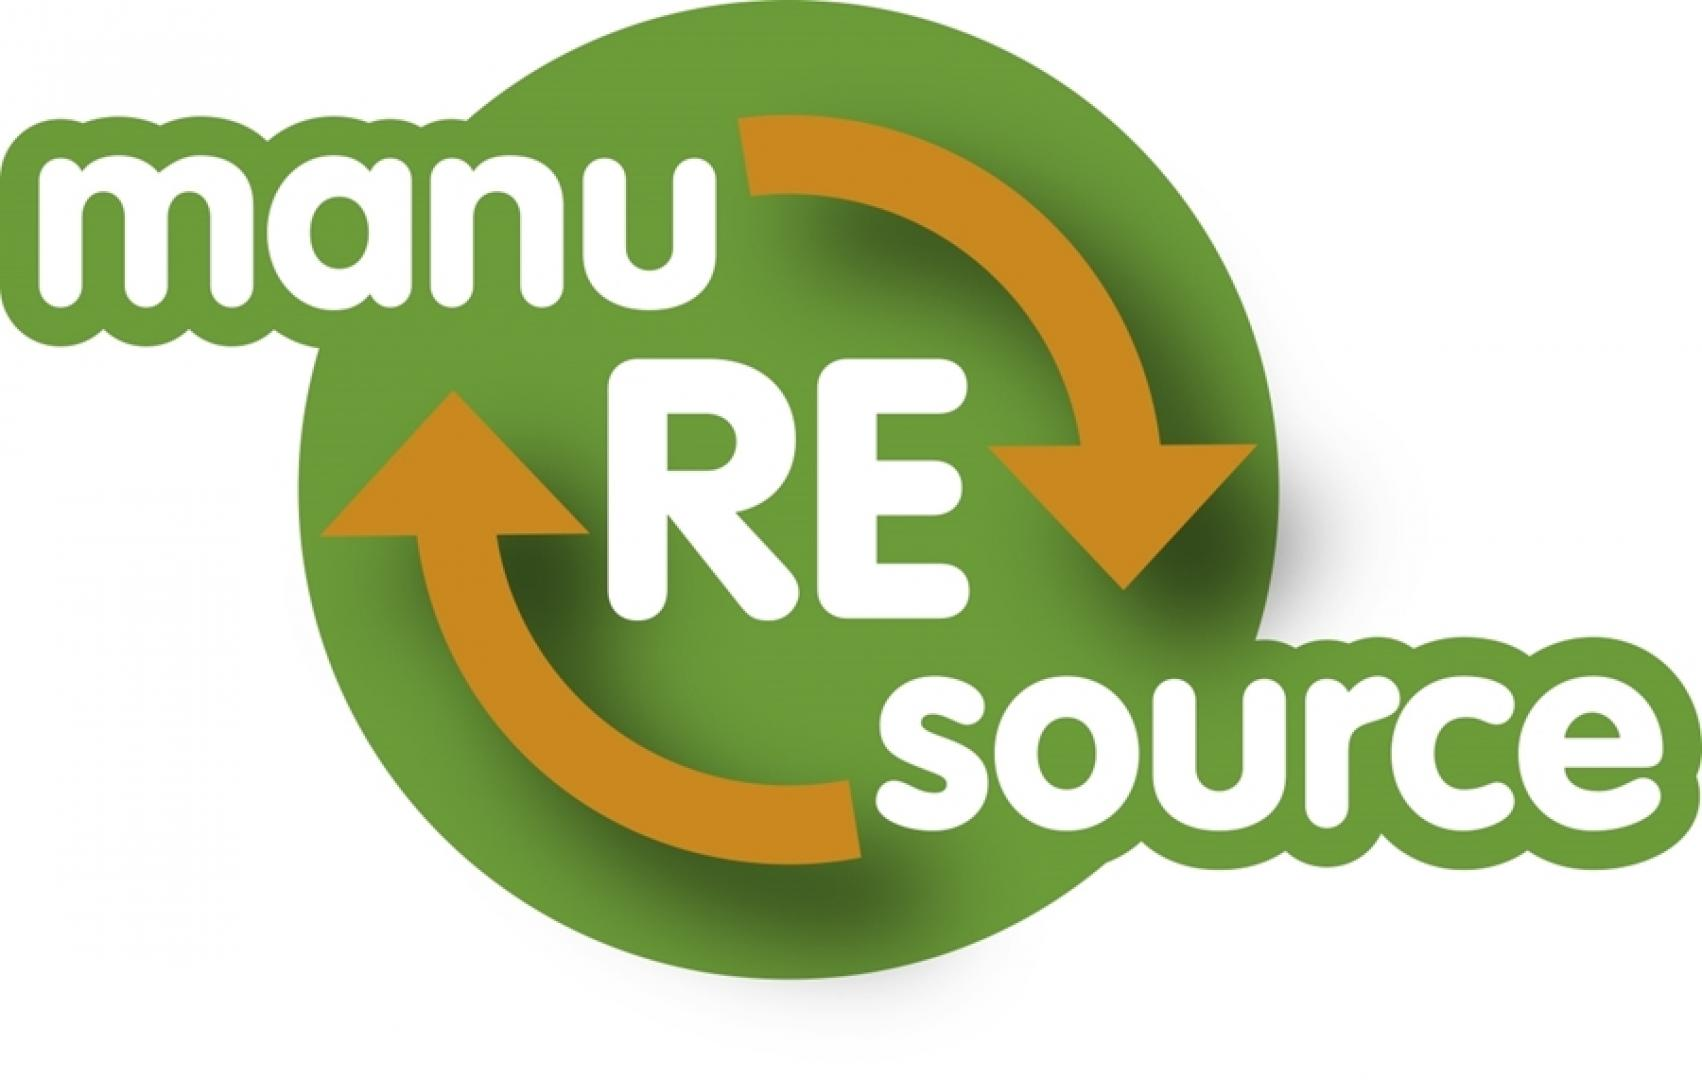 Programma Manuresource op 27, 28 en/of 29 november